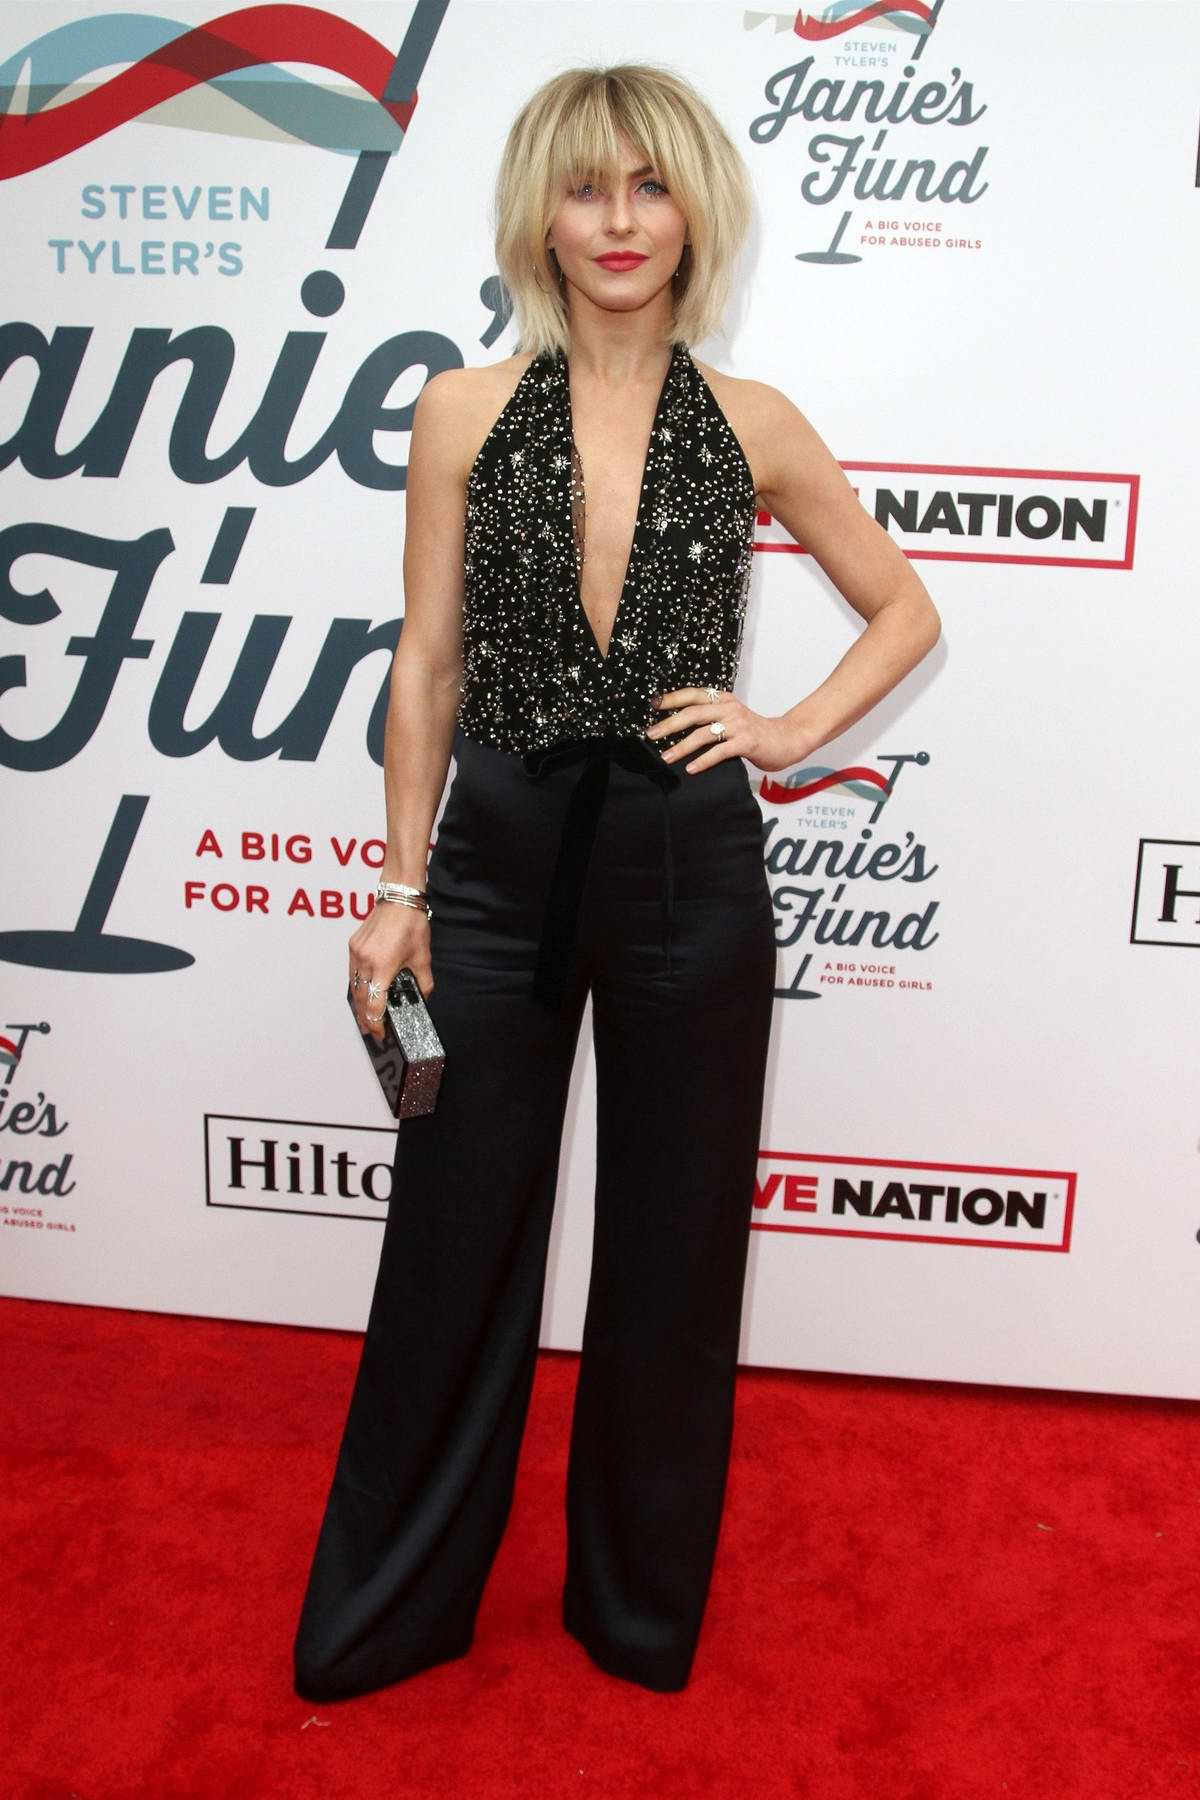 Julianne Hough attends the Steven Tyler's Grammy Awards Viewing Party To Benefit Janie's Fund in Hollywood, California